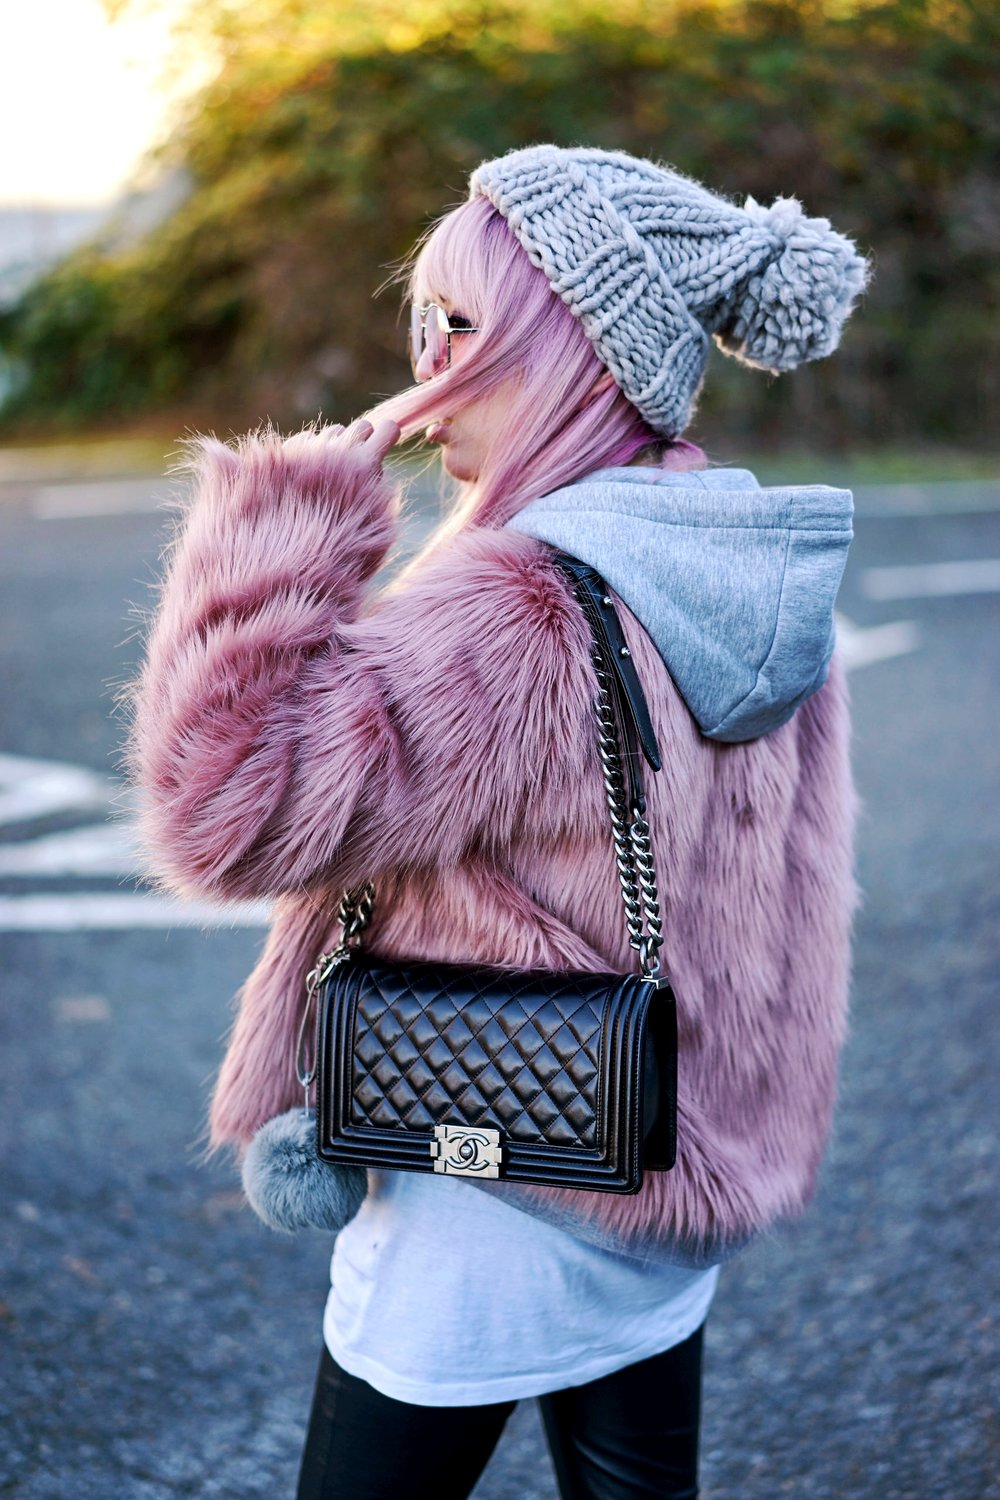 ASOS Beanie-Forever 21 pink Faux Fur coat_H&M cropped hooded Sweatshirt-H&M long t-shirt-H&M Leather Biker Pants-Chanel quilted Boy Bag-Aika's Love Closet-Seattle Fashion Blogger-Japanese-Pink hair-petite fashion